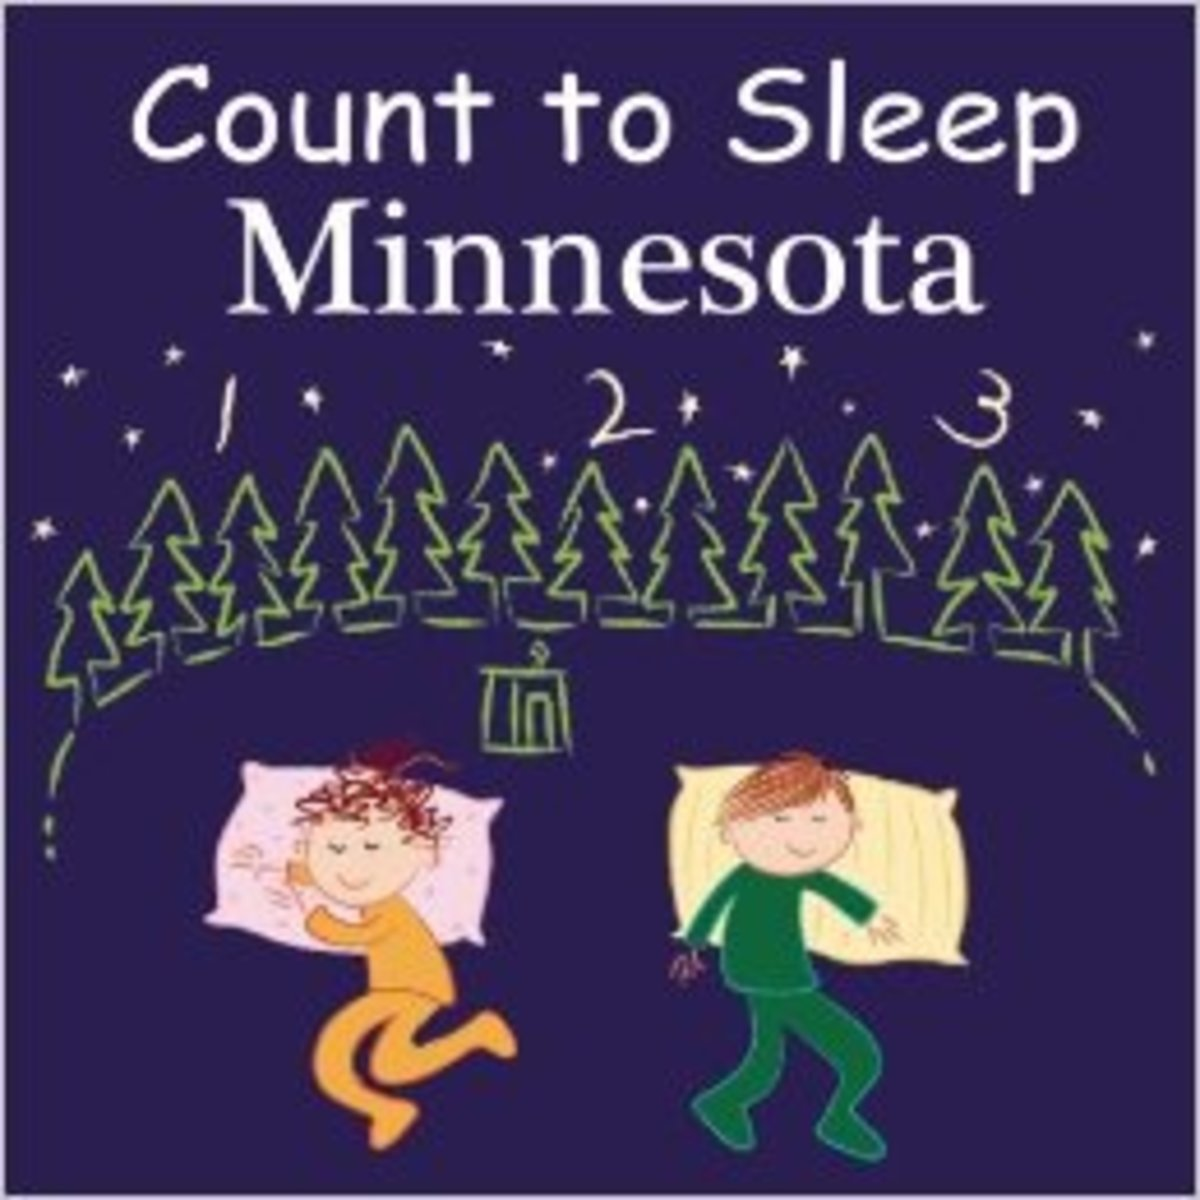 Count To Sleep Minnesota Board book by Adam Gamble